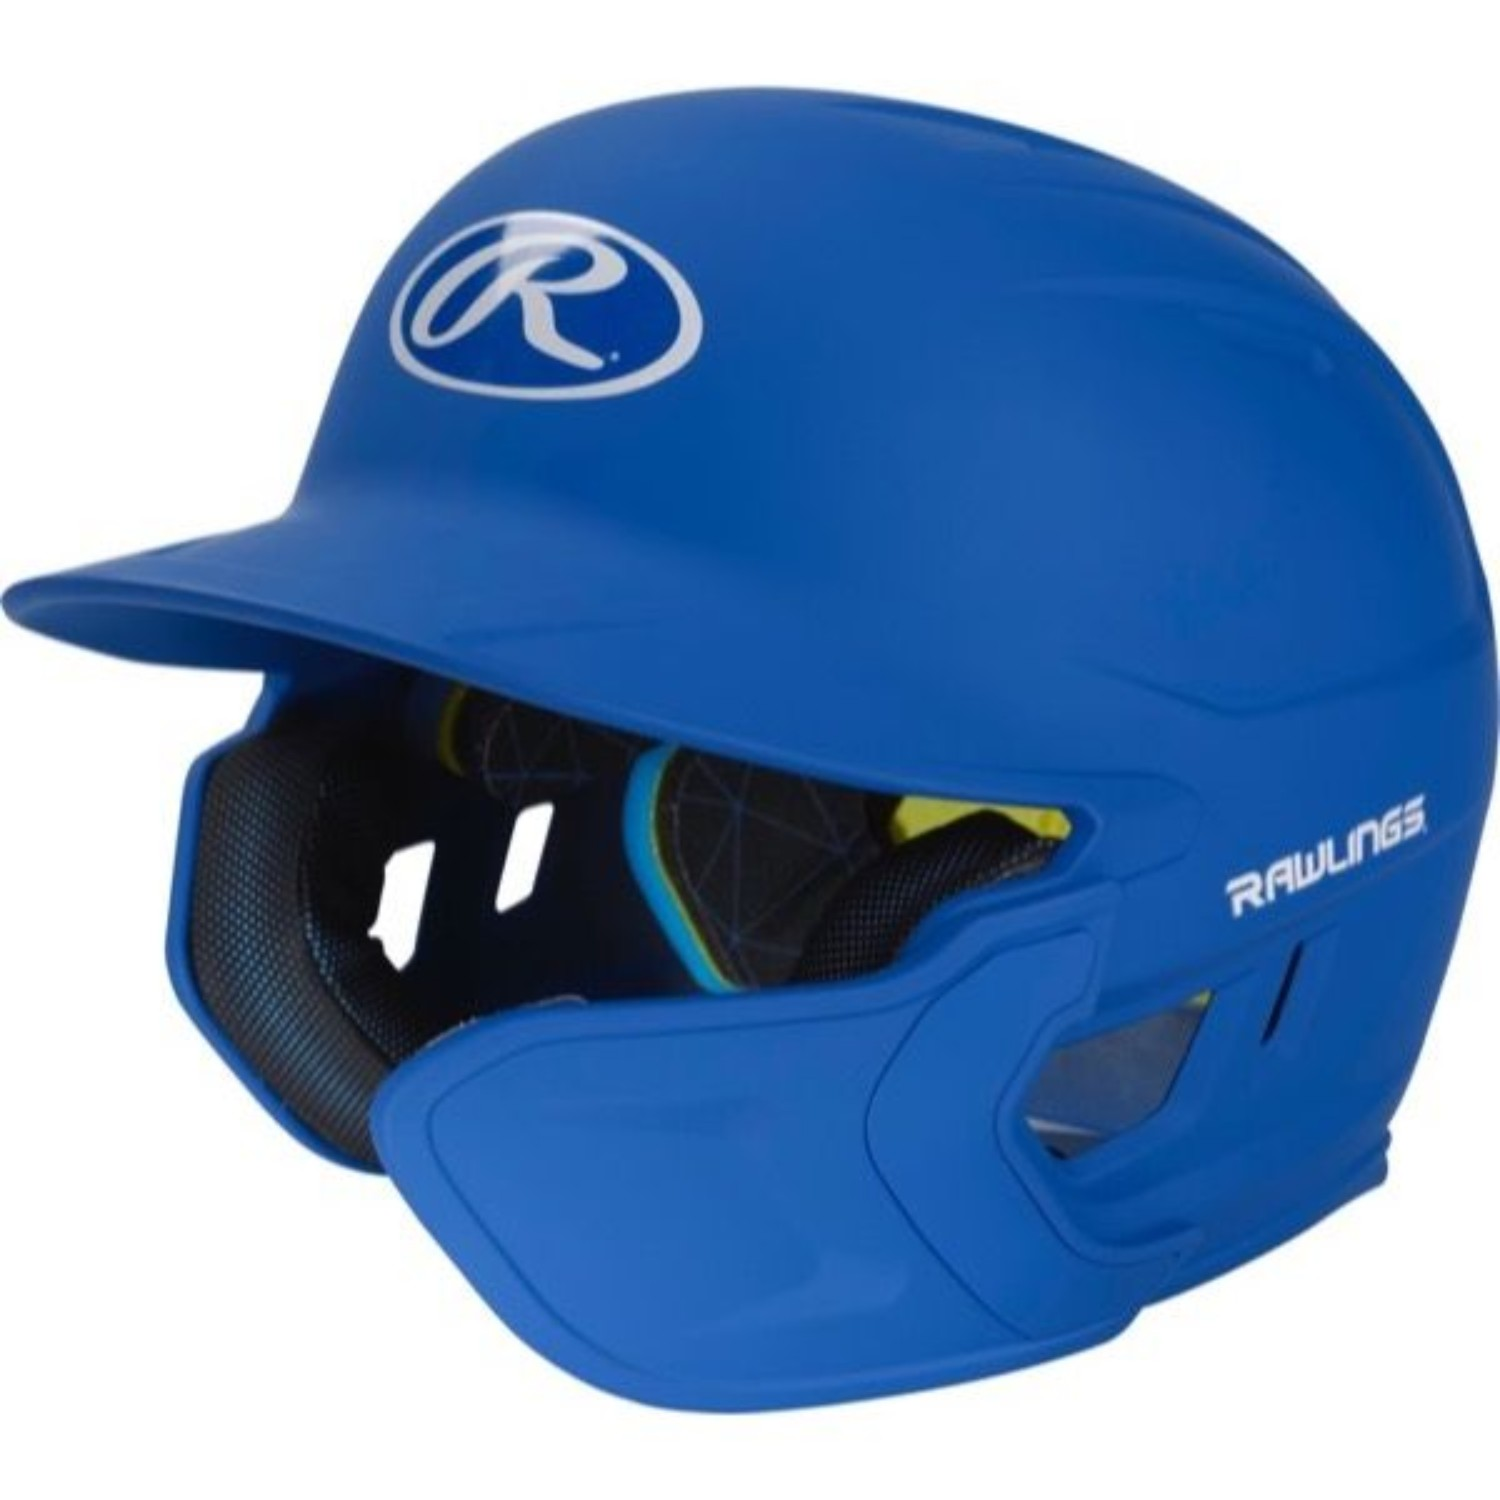 Rawlings Mach EXT Batting Helmet-SR-RH, Royal